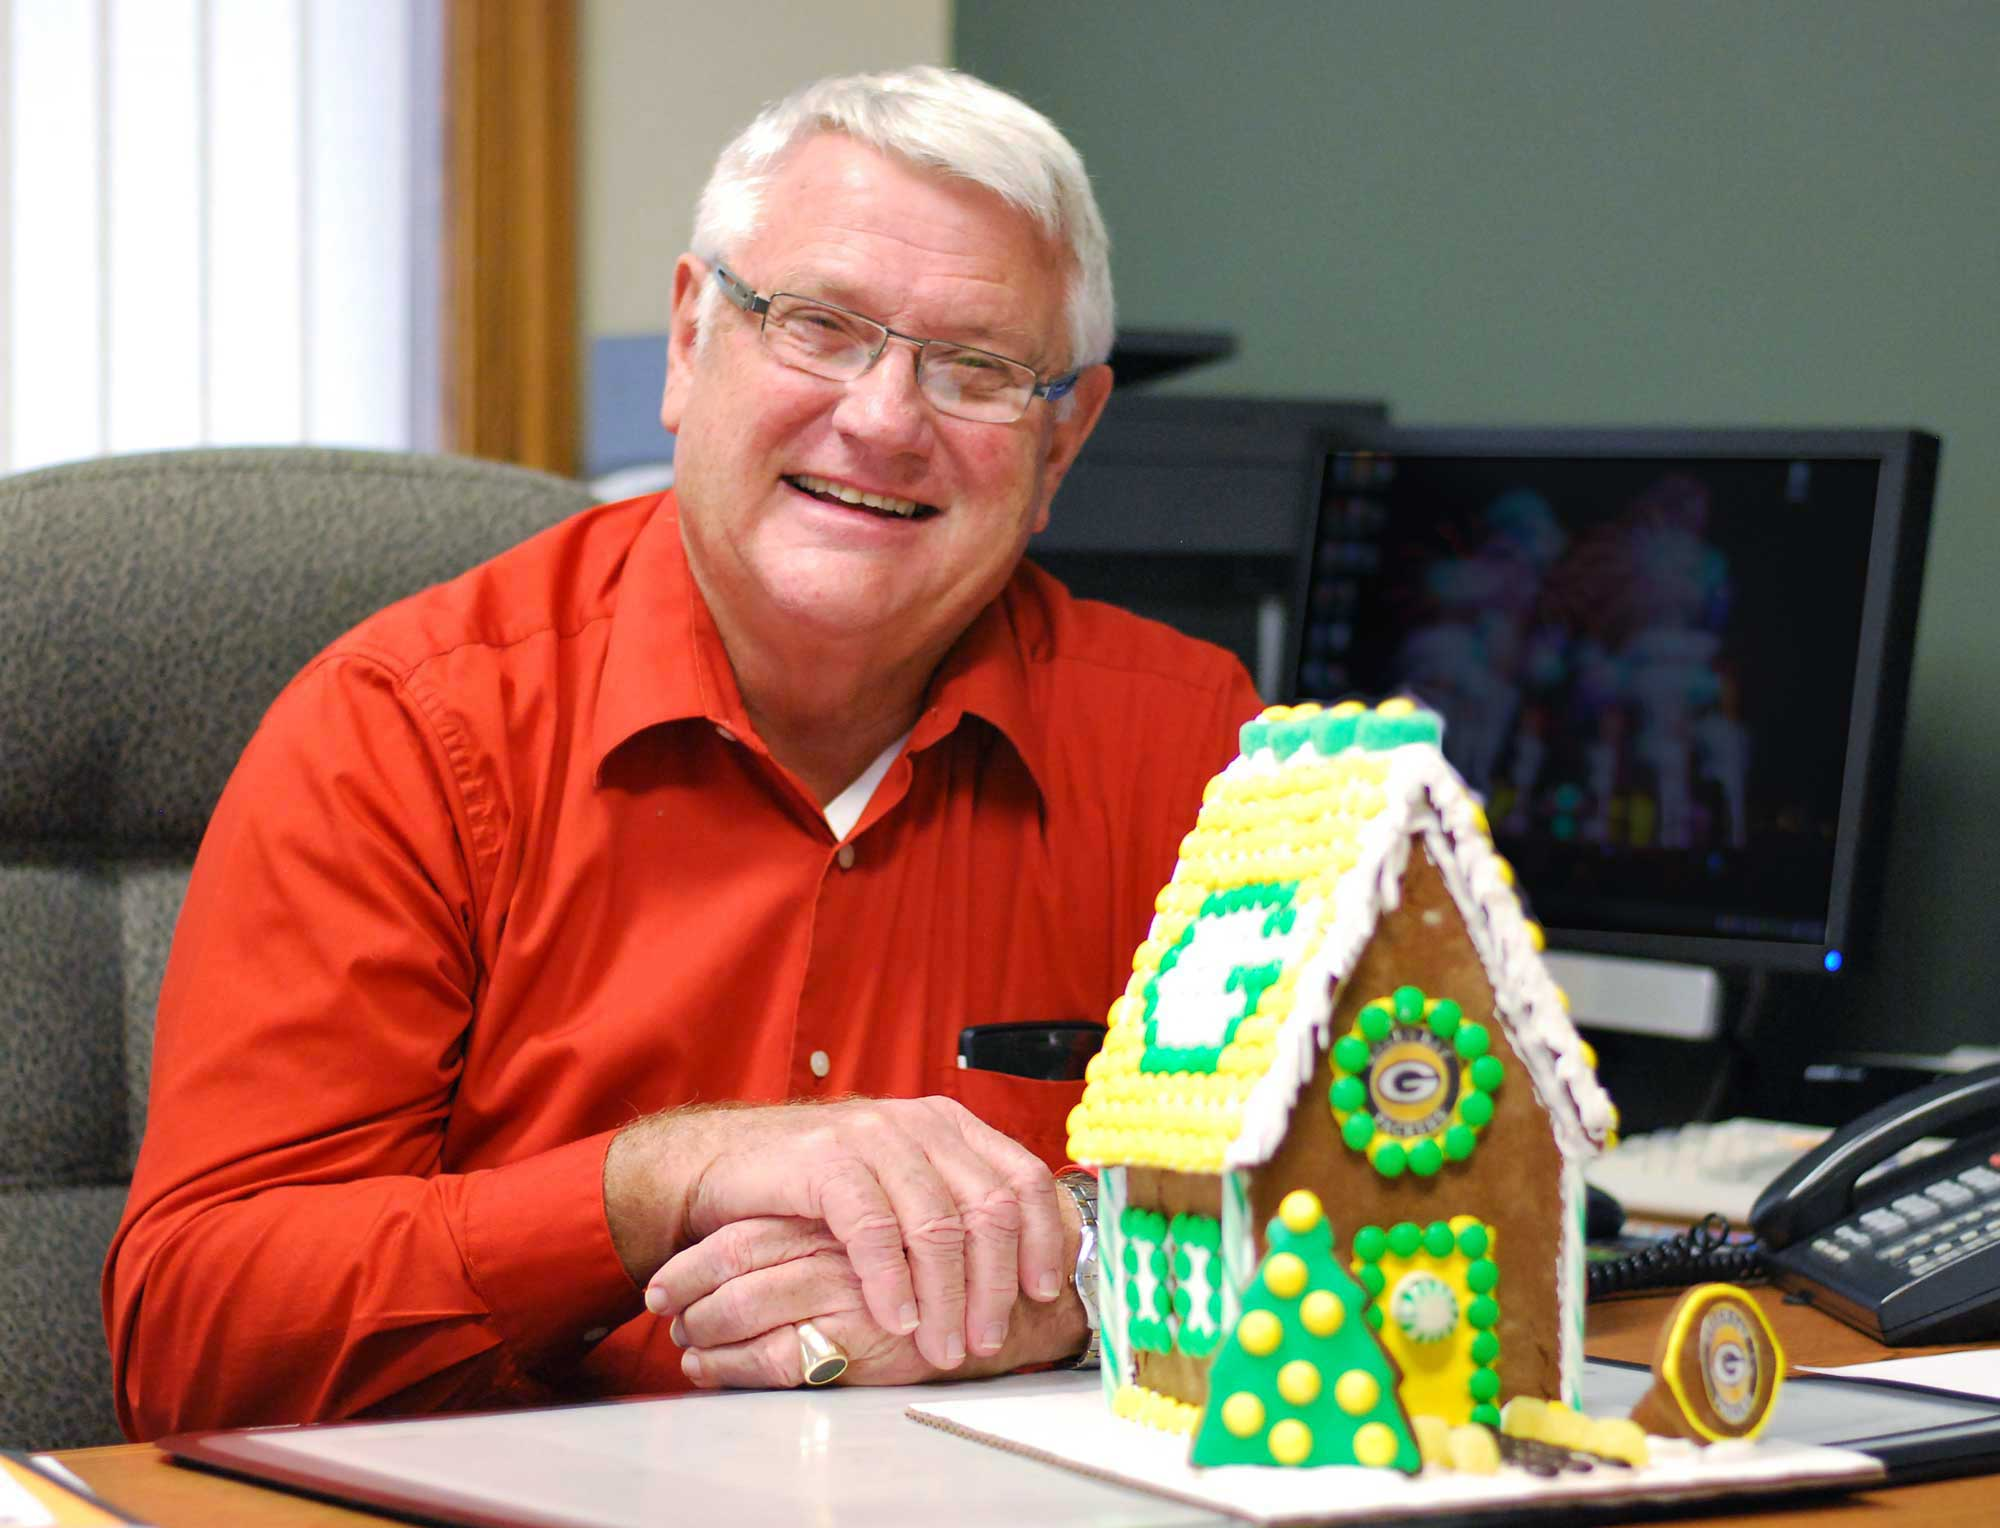 Howard Wiedenhoeft crafts gingerbread houses with detail and love.